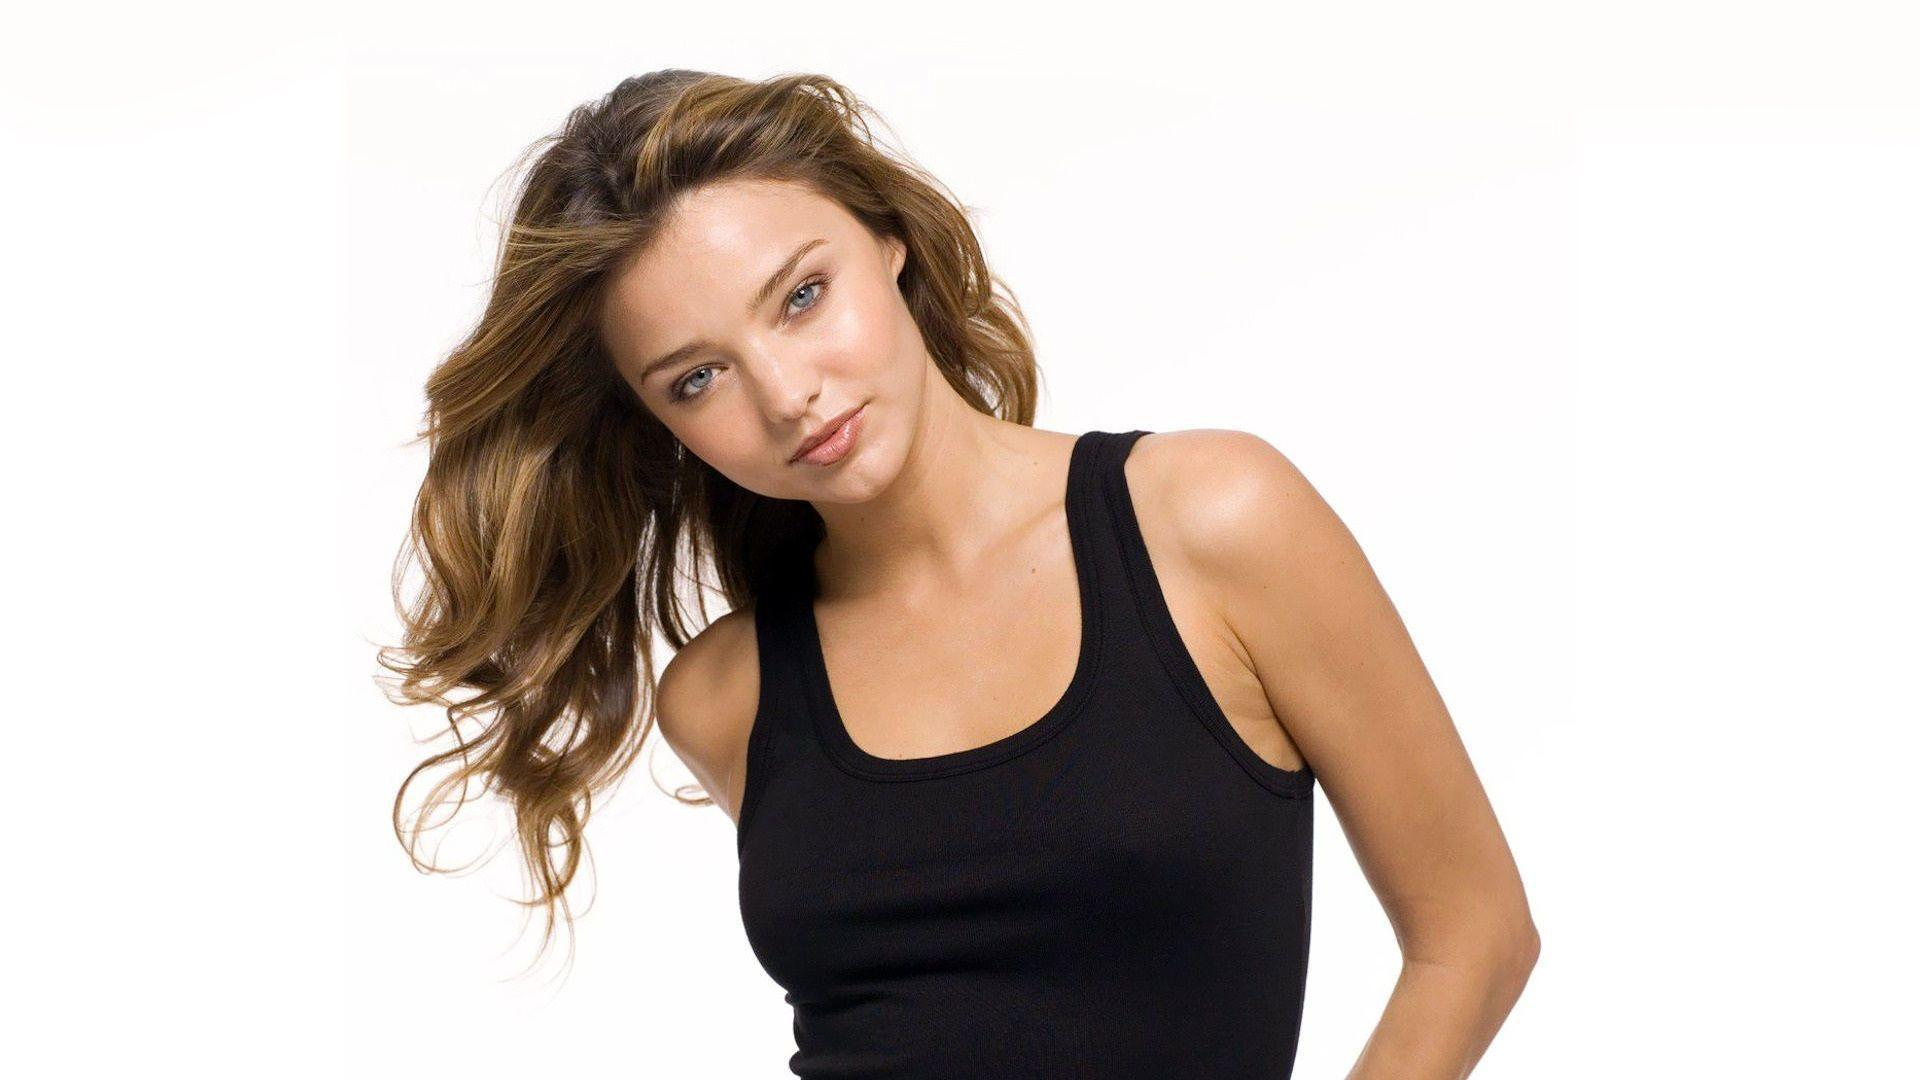 Miranda Kerr Wallpapers HD - Wallpaper Cave